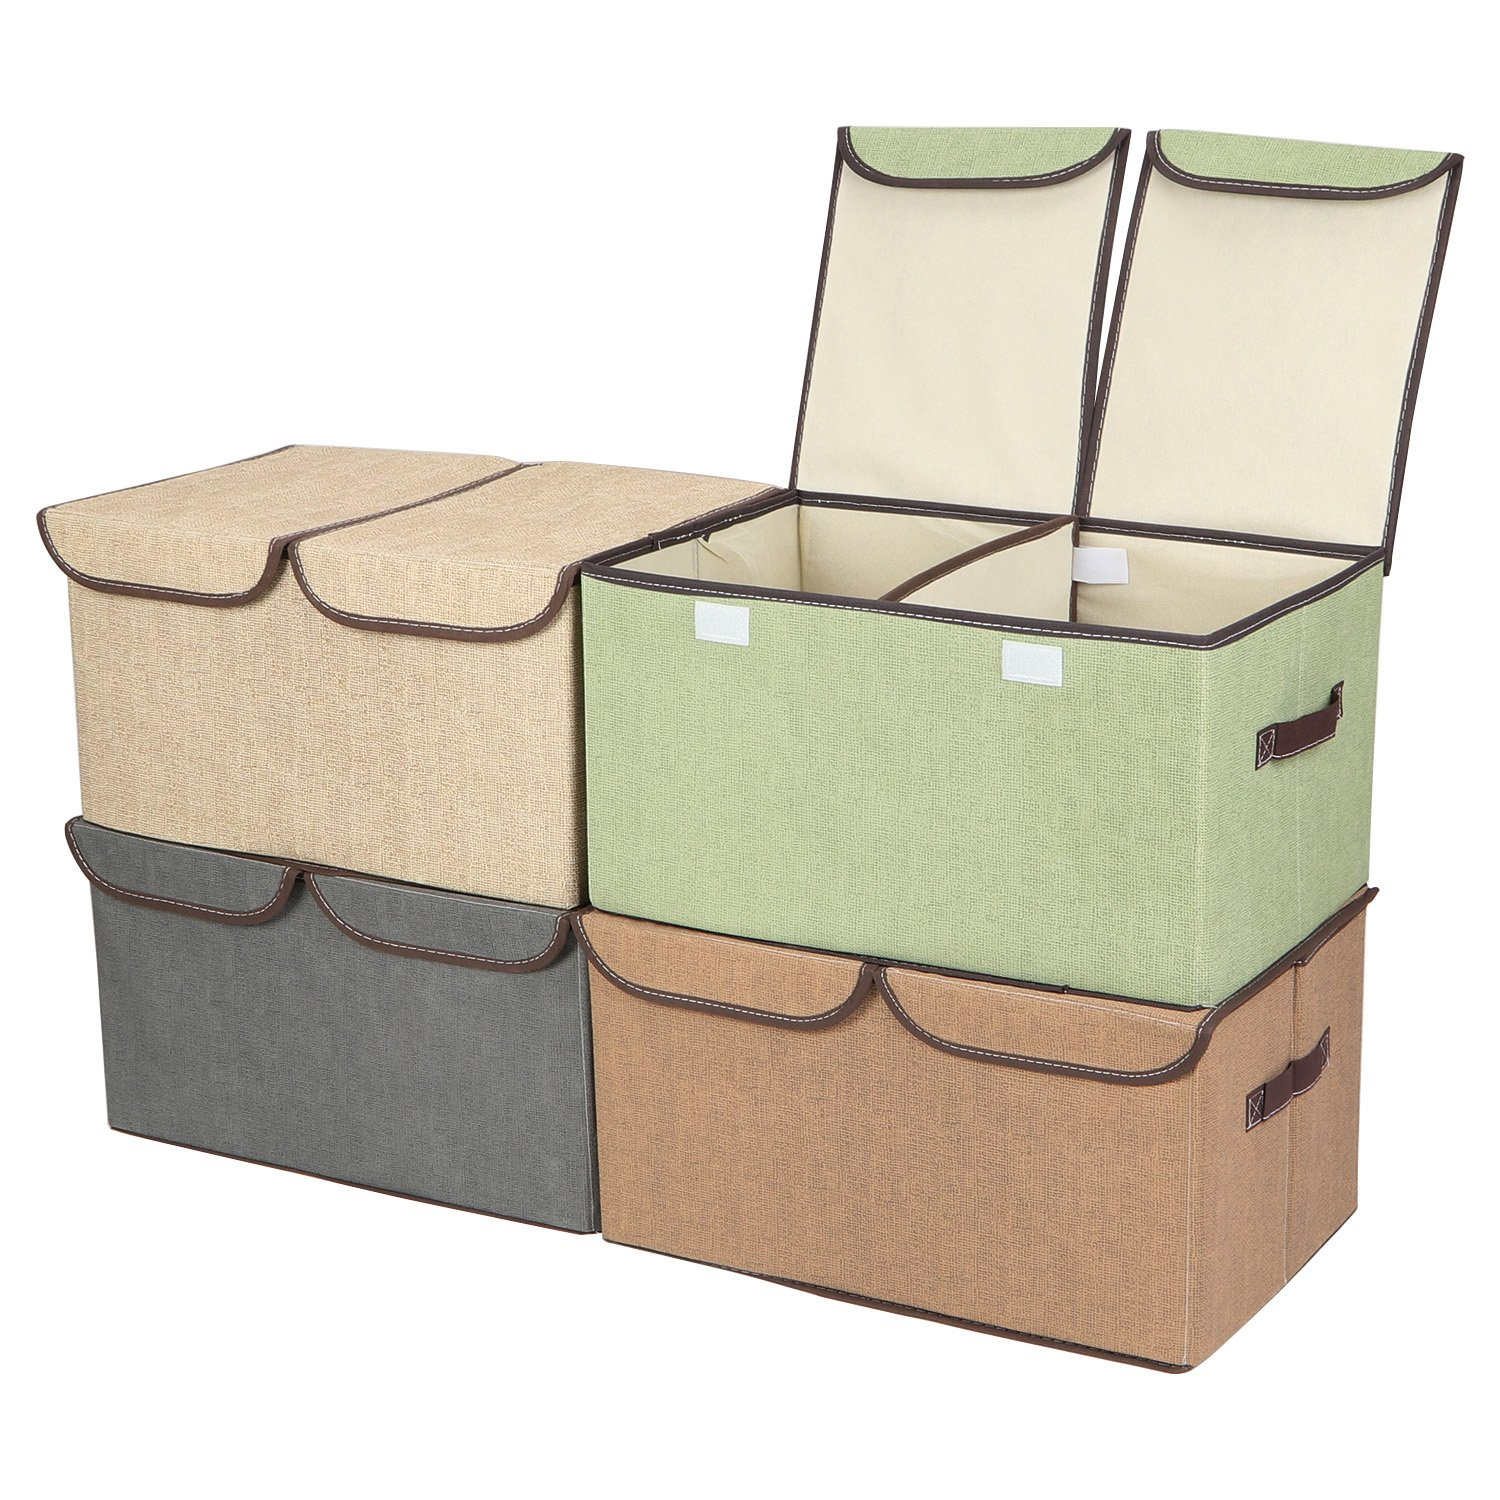 RONRI Cube Storage Bins Storage Boxes Organizer Bin Containers Cubes Foldable Storage Boxes with Handles for Home, Office, Nursery, Closet, Bedroom, Living Room, Green, Grey, Beige, Khaki 4 Packs